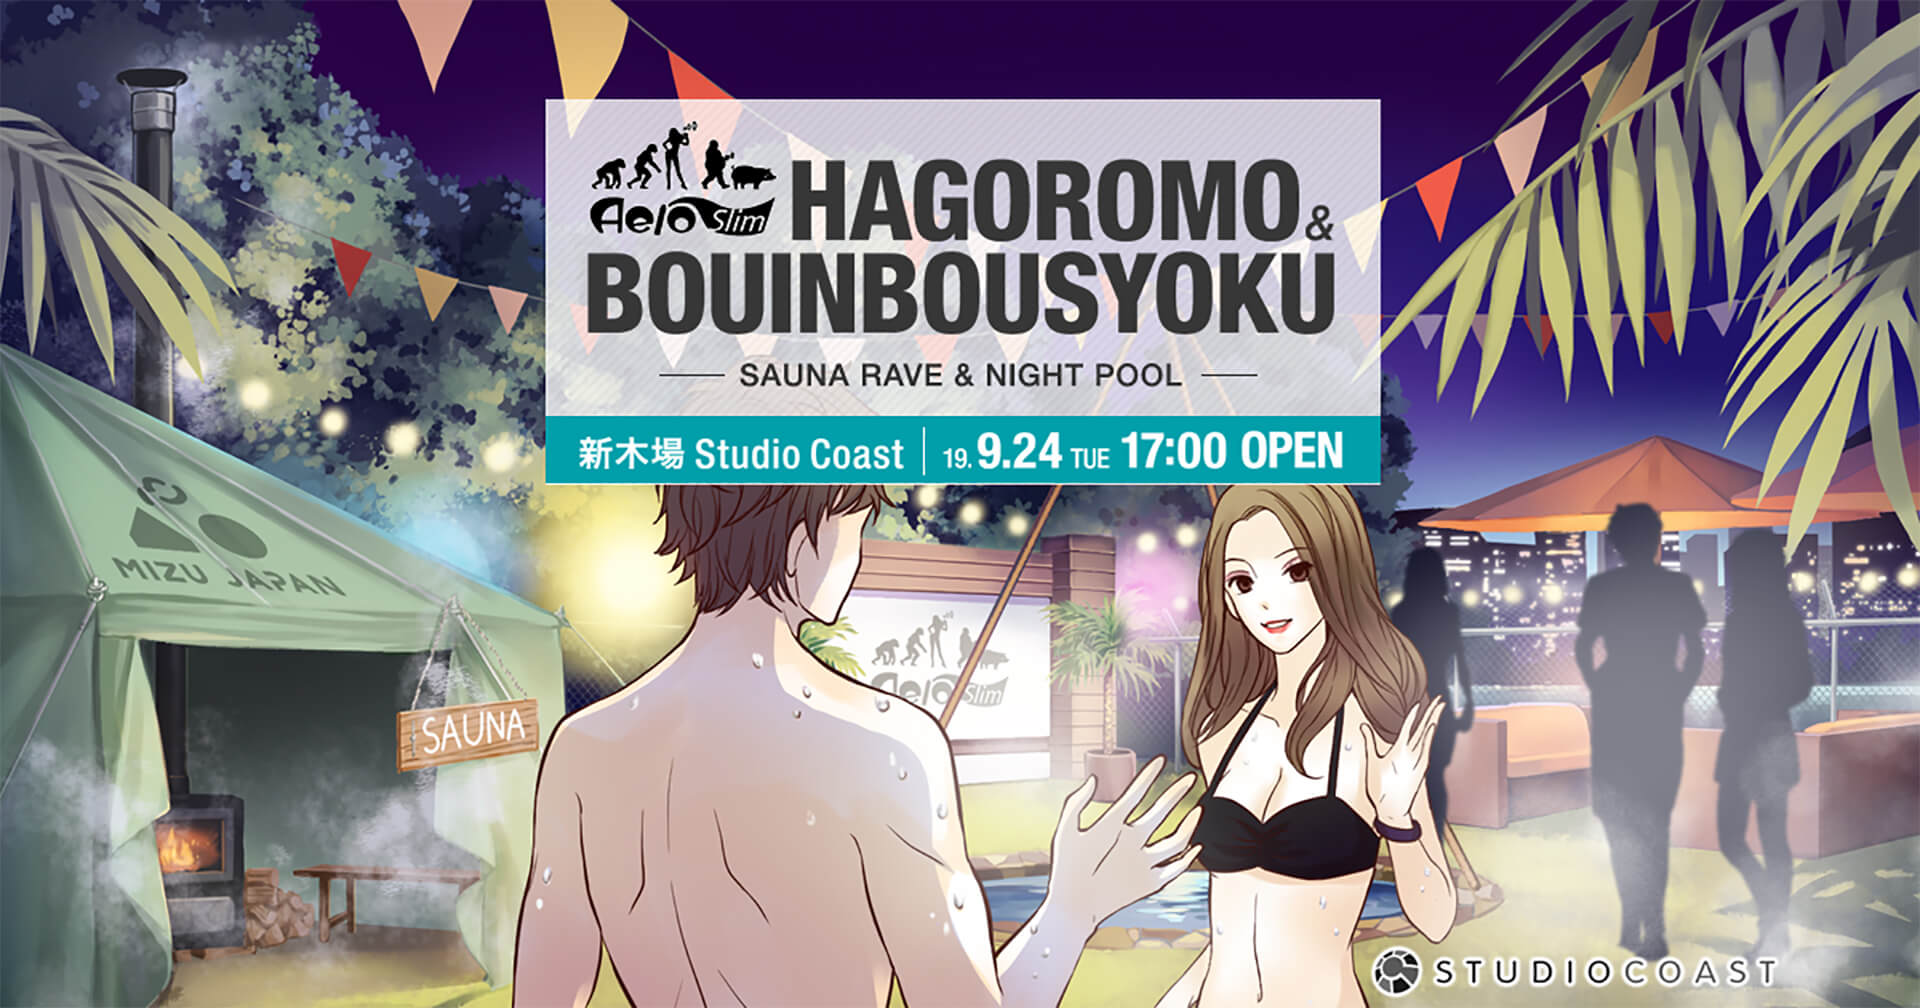 HAGOROMO&BOUINBOUSYOKUーSAUNA RAVE NIGHT POOLメインビジュアル